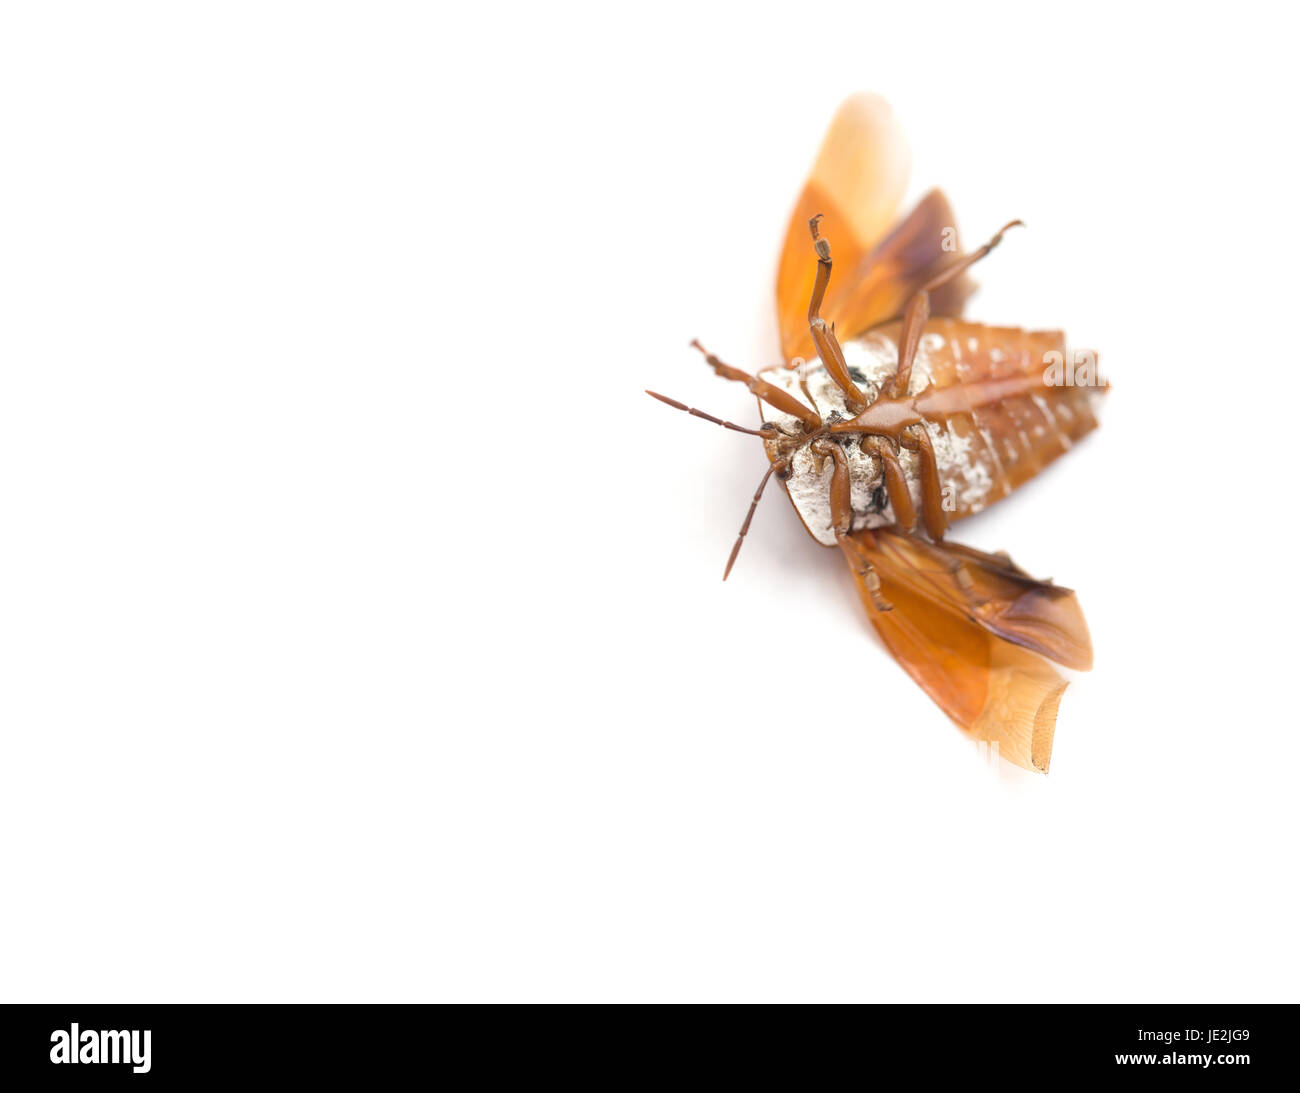 Upside Down Bed Bug With Wings Opened On White Background Stock